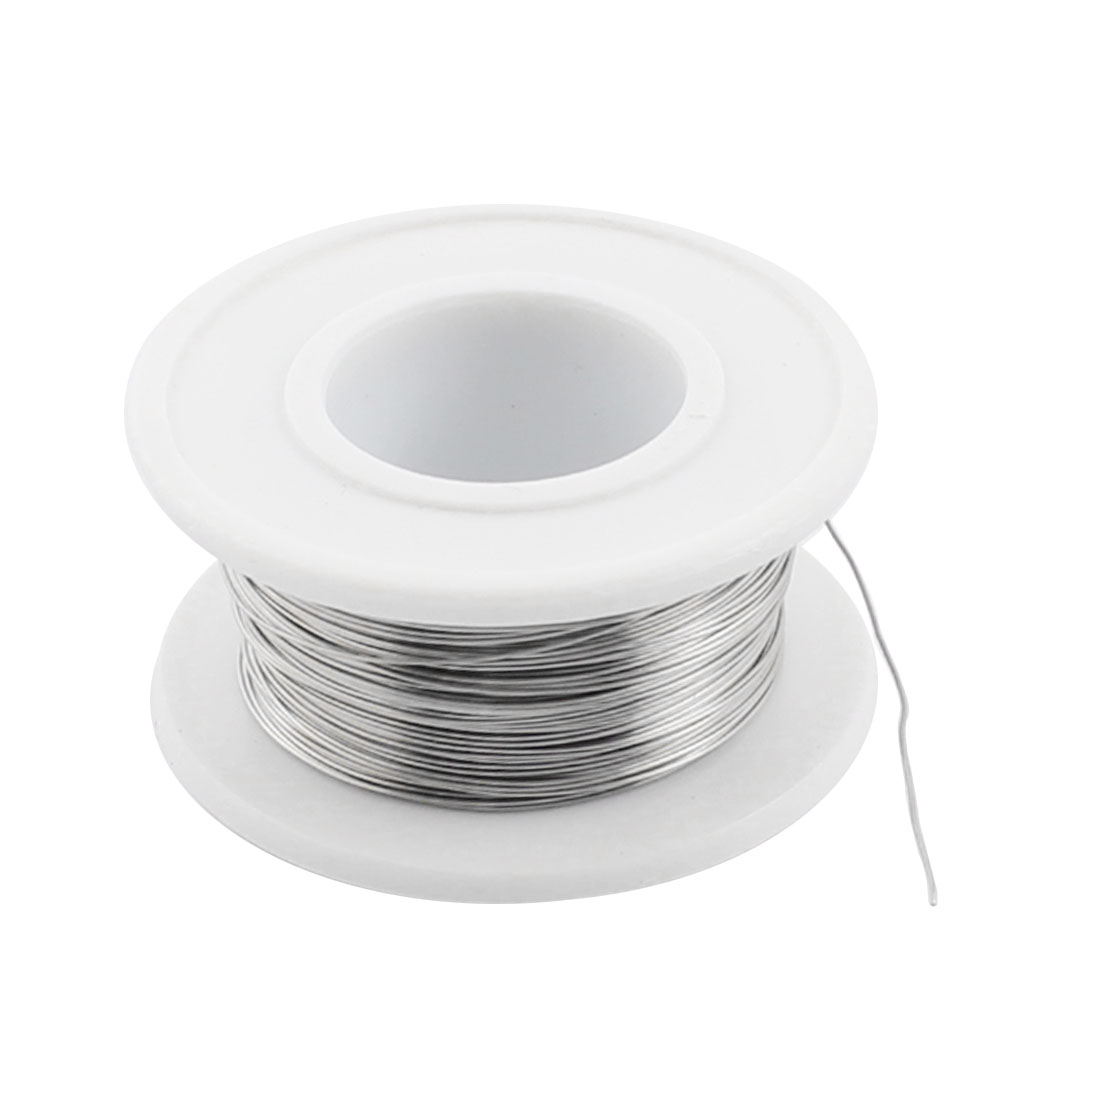 50meter 165ft 0.3mm Dia AWG29 15.4Ohm/M Nichrome Resistance Resistor Wire for Heating Elements